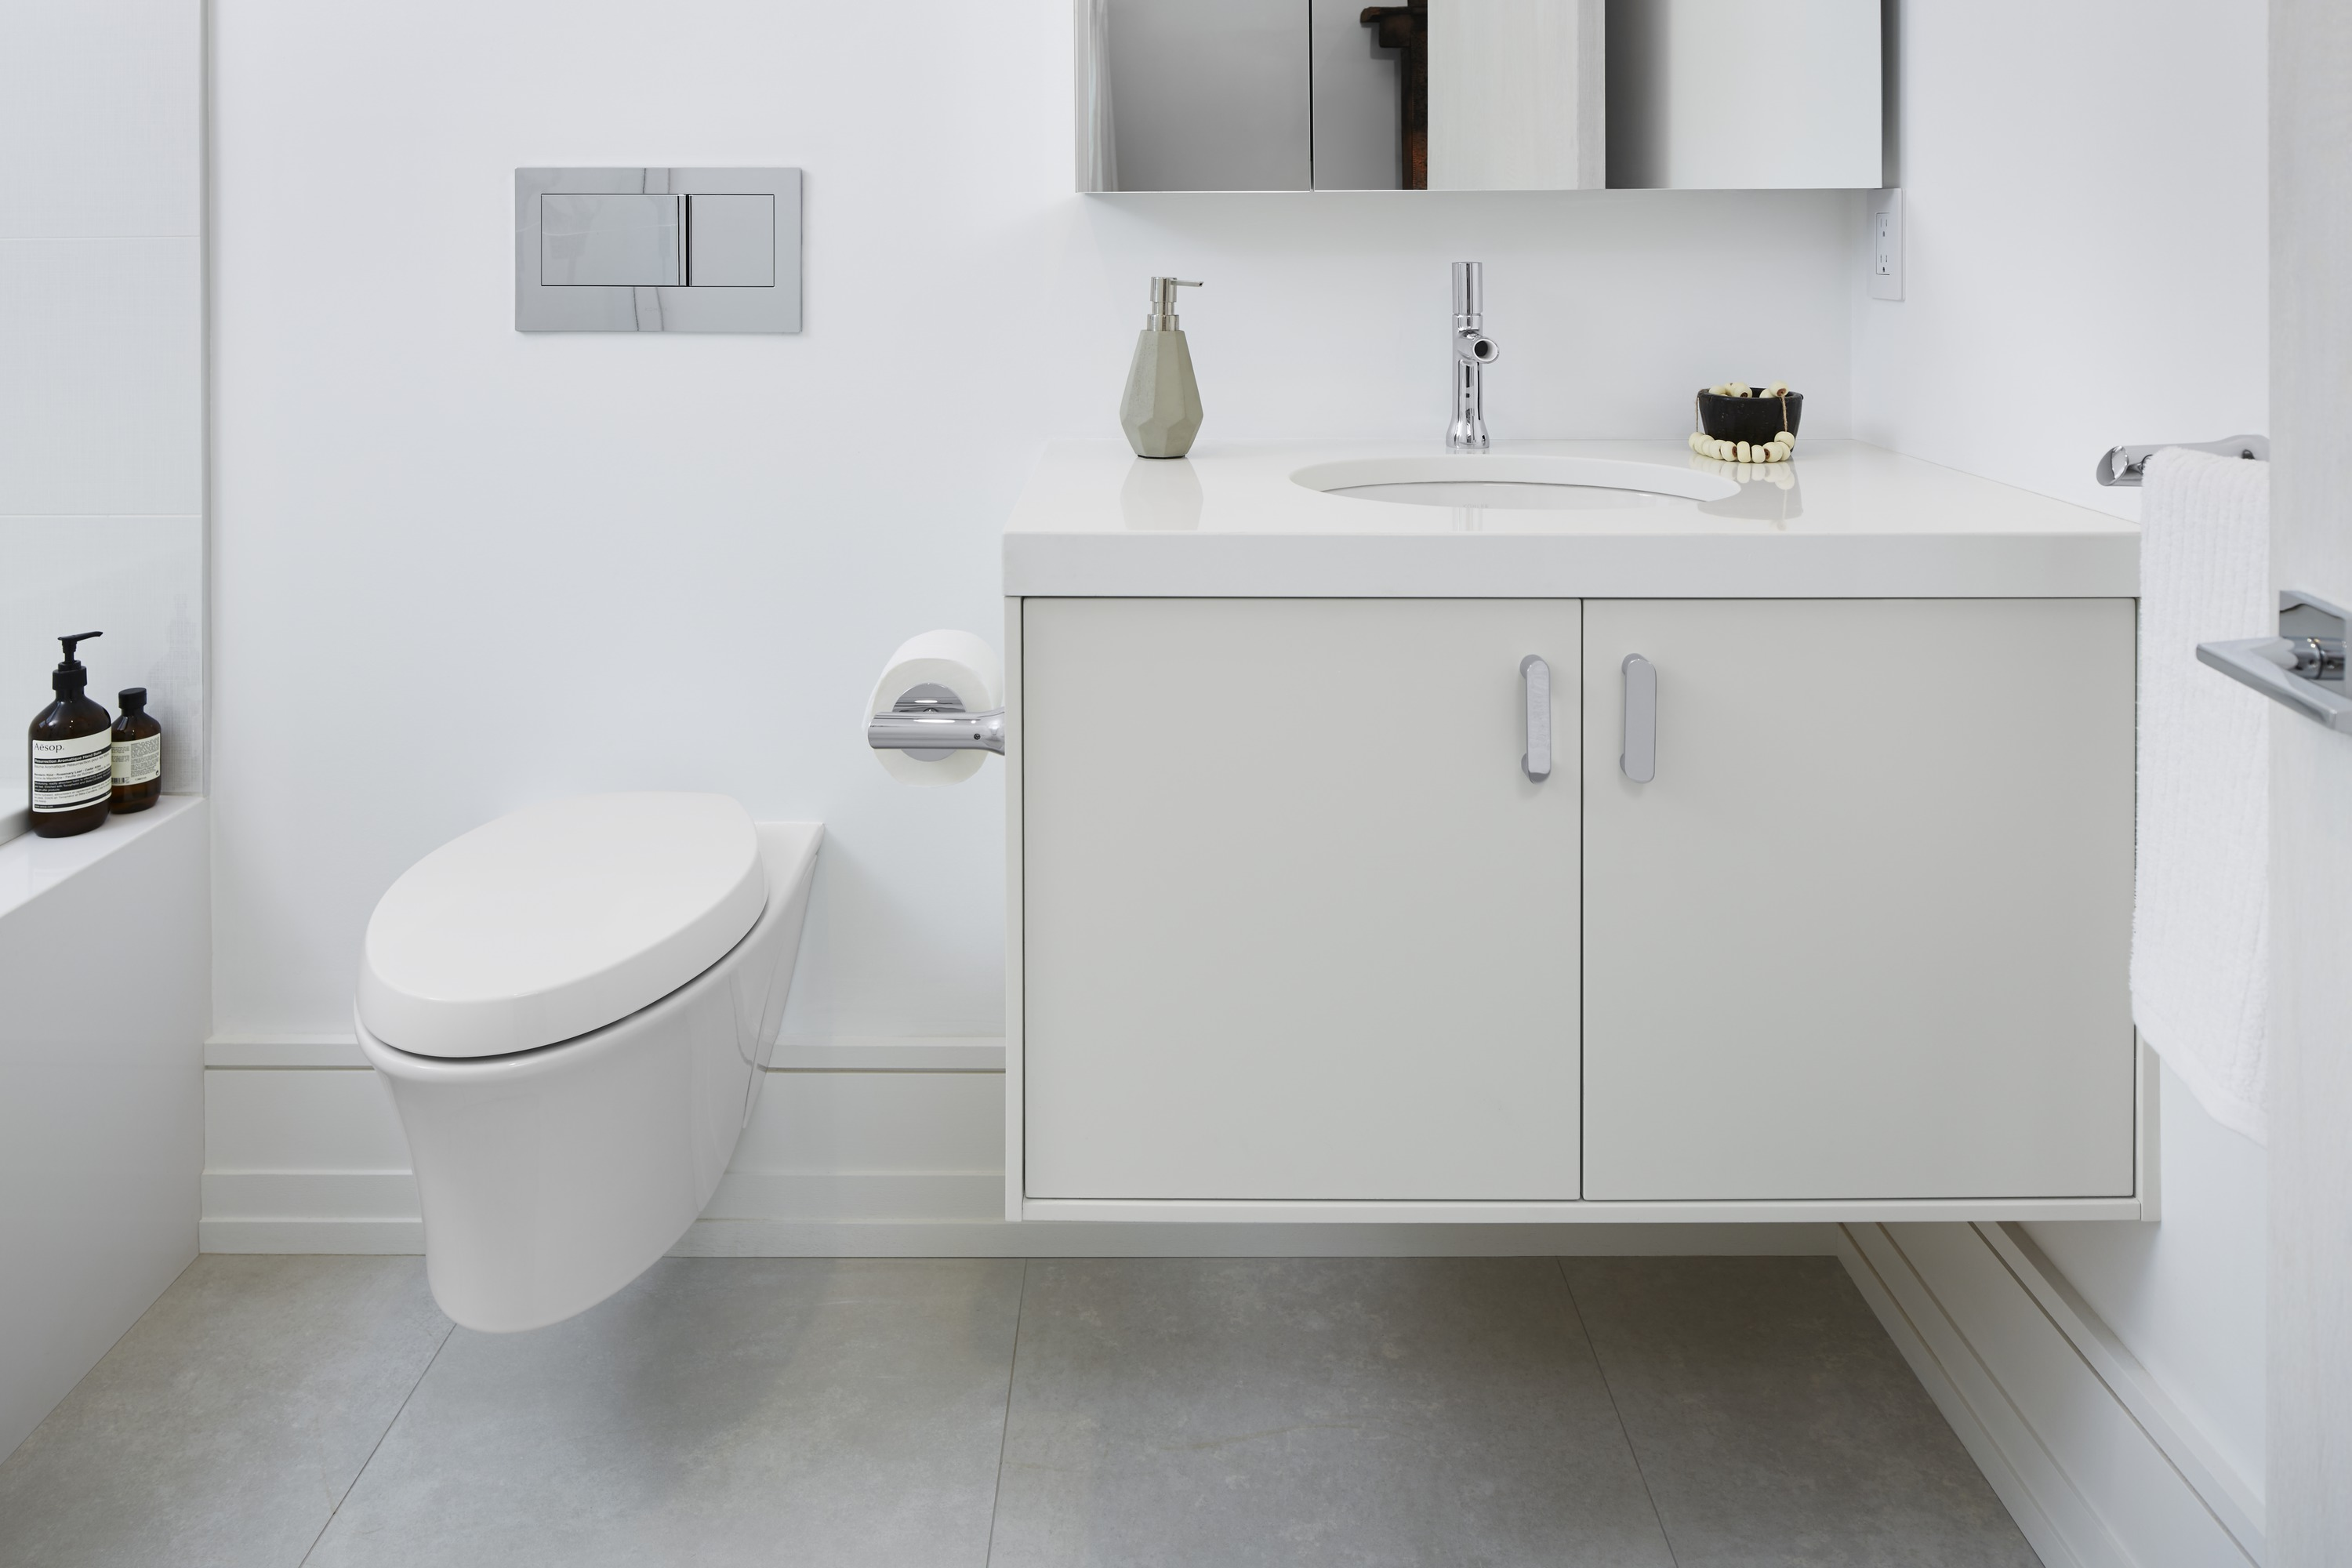 Toobi Faucet     Jute Vanity     Veil Toilet     Veil Flush Plate     Achieving a Zen-like simplicity, the design for this bathroom relies on a wall-hung vanity and toilet to reinforce an open airiness, and faucets that nod to simple bamboo water fountains.